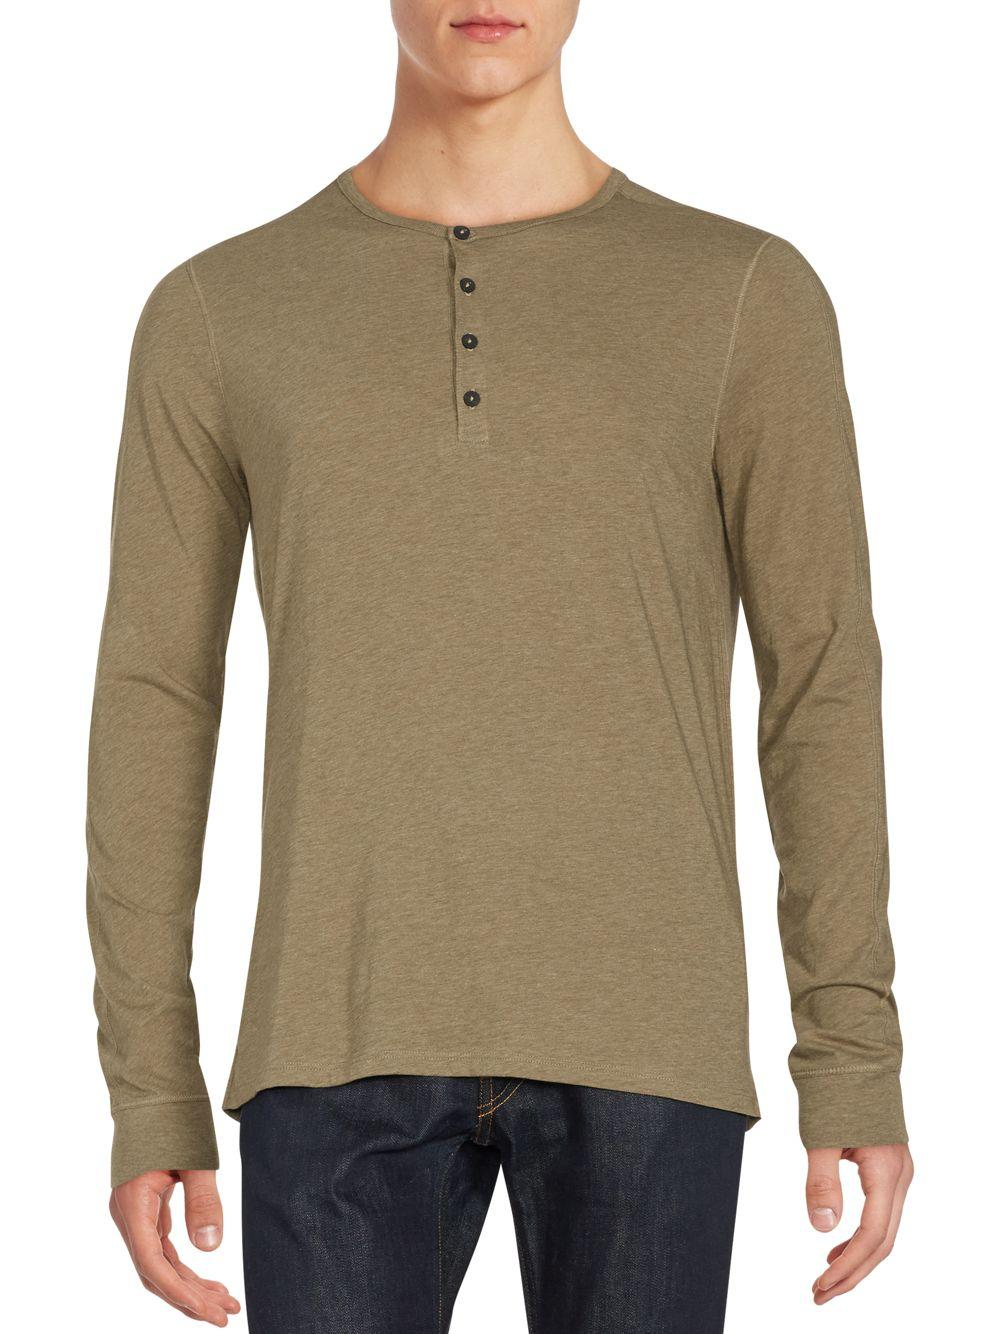 Find great deals on eBay for pima cotton t shirt. Shop with confidence.